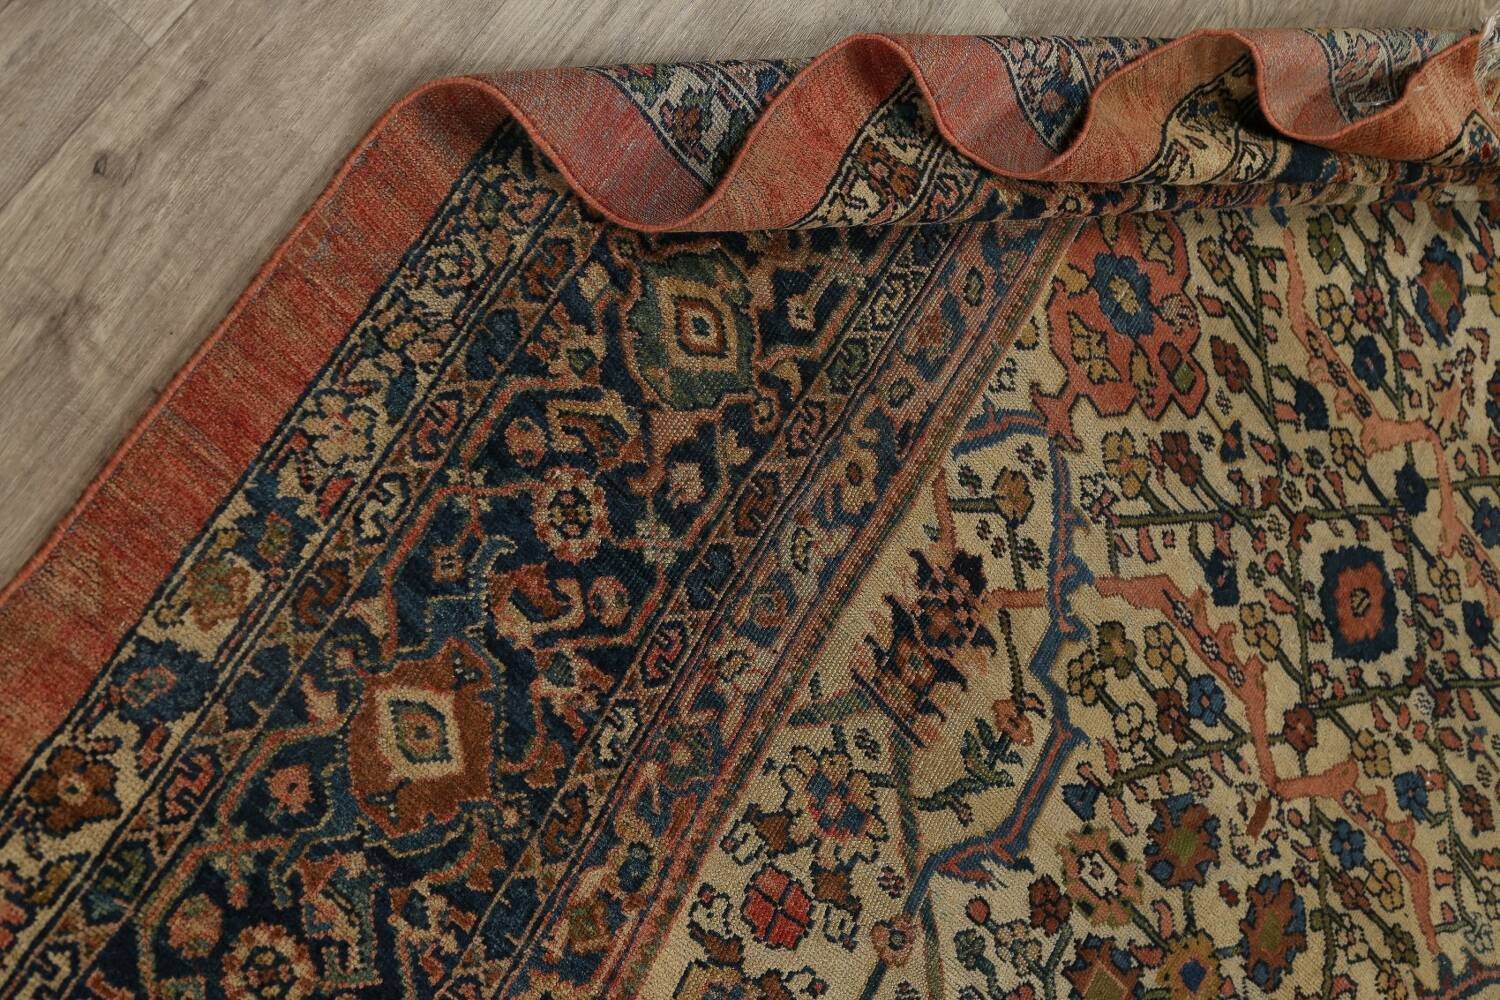 Pre-1900 Antique Vegetable Dye Sultanabad Persian Area Rug 10x13 image 18